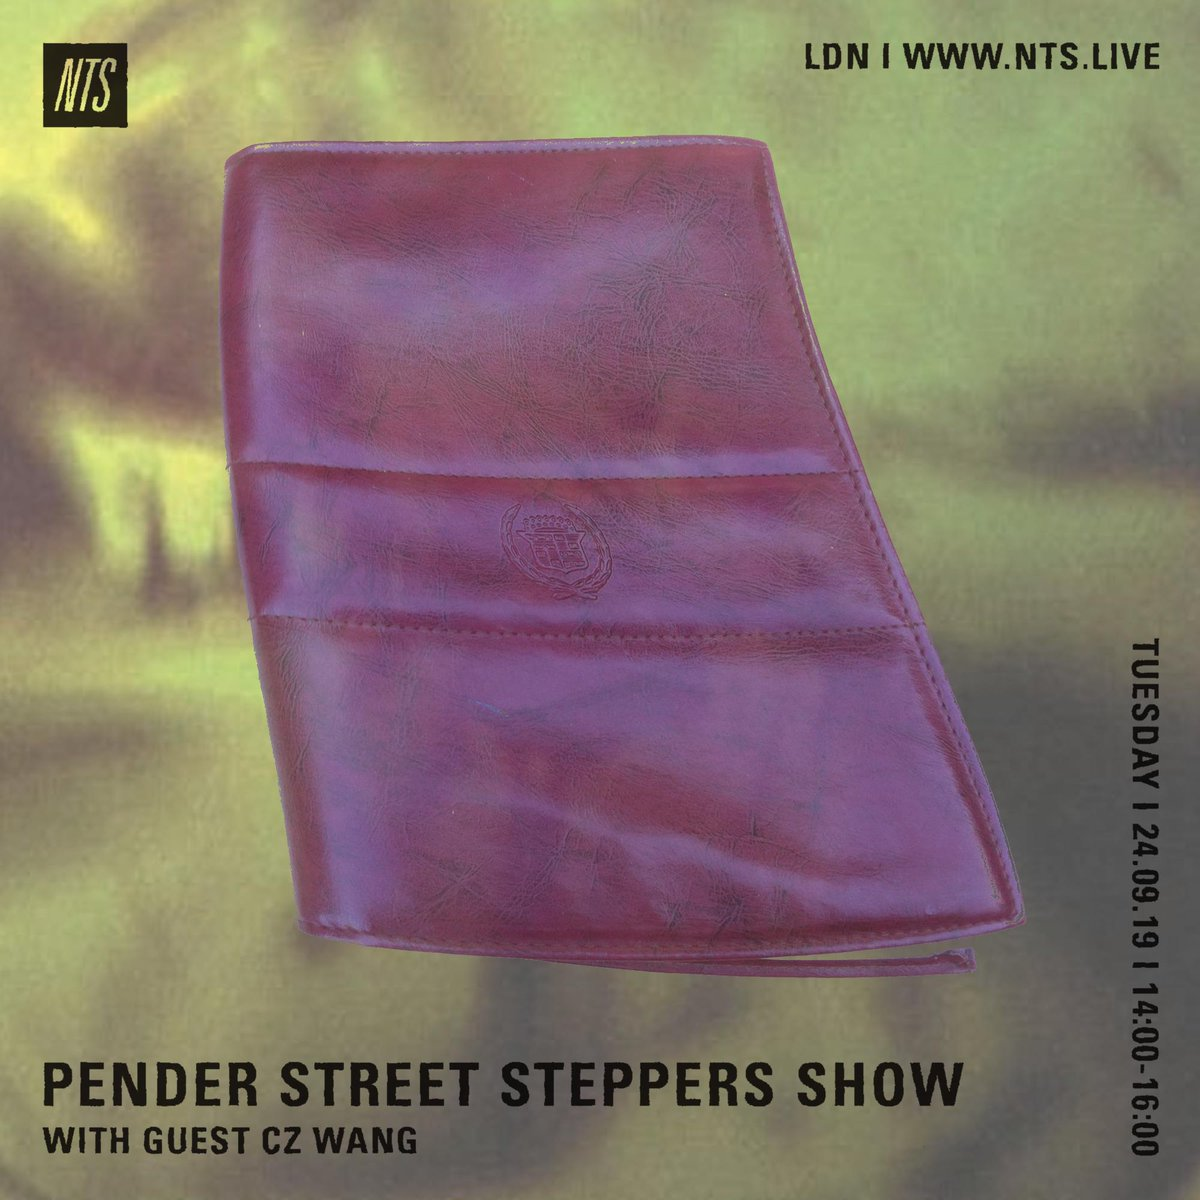 Jungle, hip hop & more on the latest Pender Street Steppers excursion, this month with CZ Wang: nts.live/2